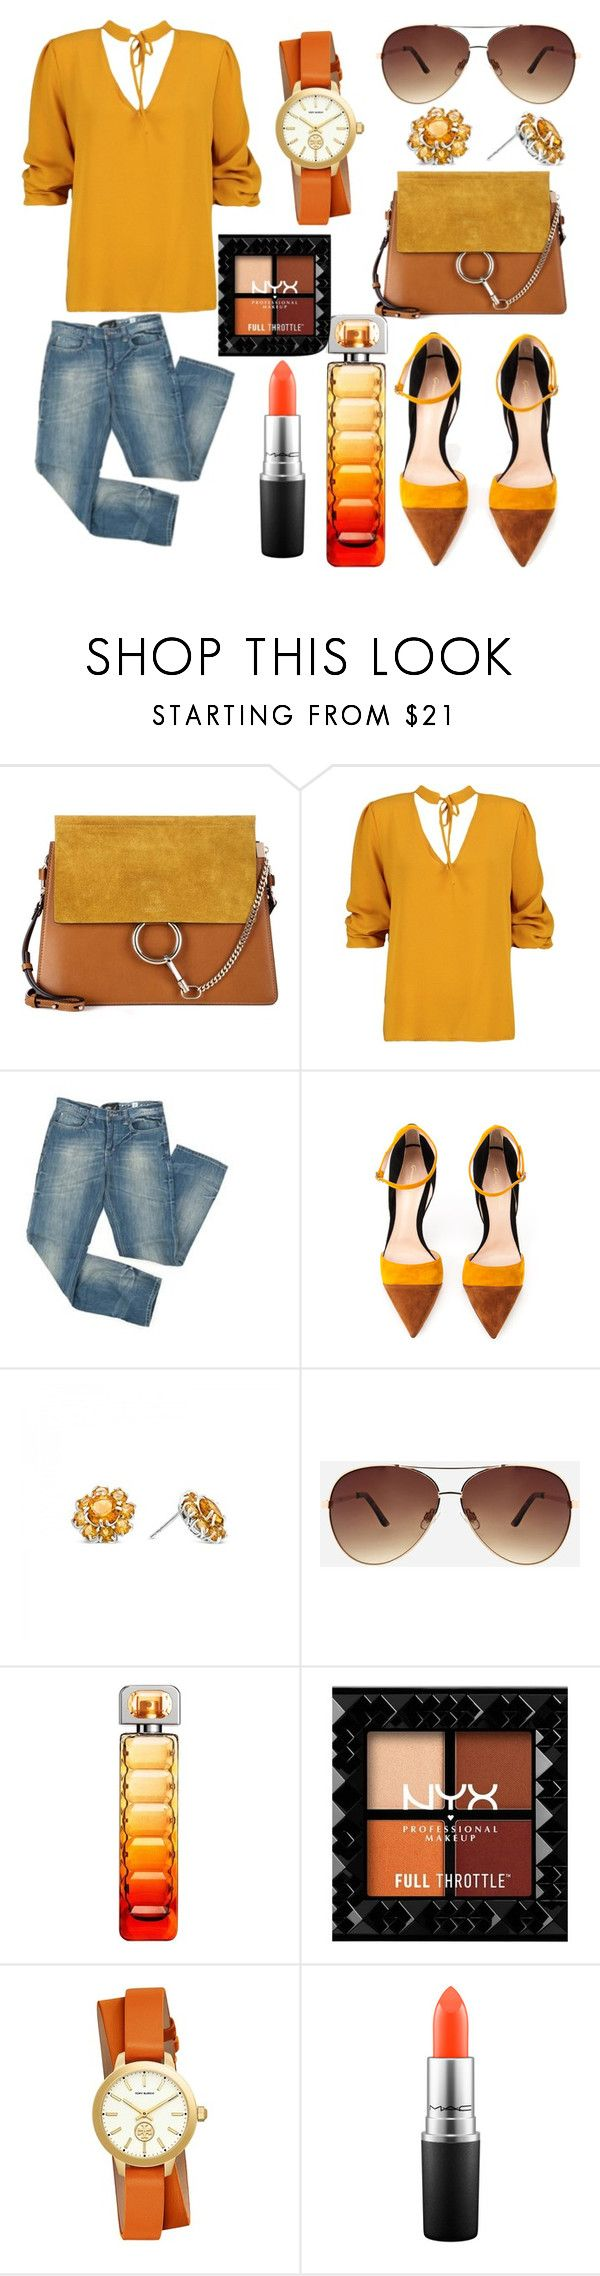 """""""Golden Sun"""" by cristina-paradela ❤ liked on Polyvore featuring Chloé, Boohoo, Mossimo, Gianvito Rossi, Ashley Stewart, HUGO, Tory Burch and MAC Cosmetics"""